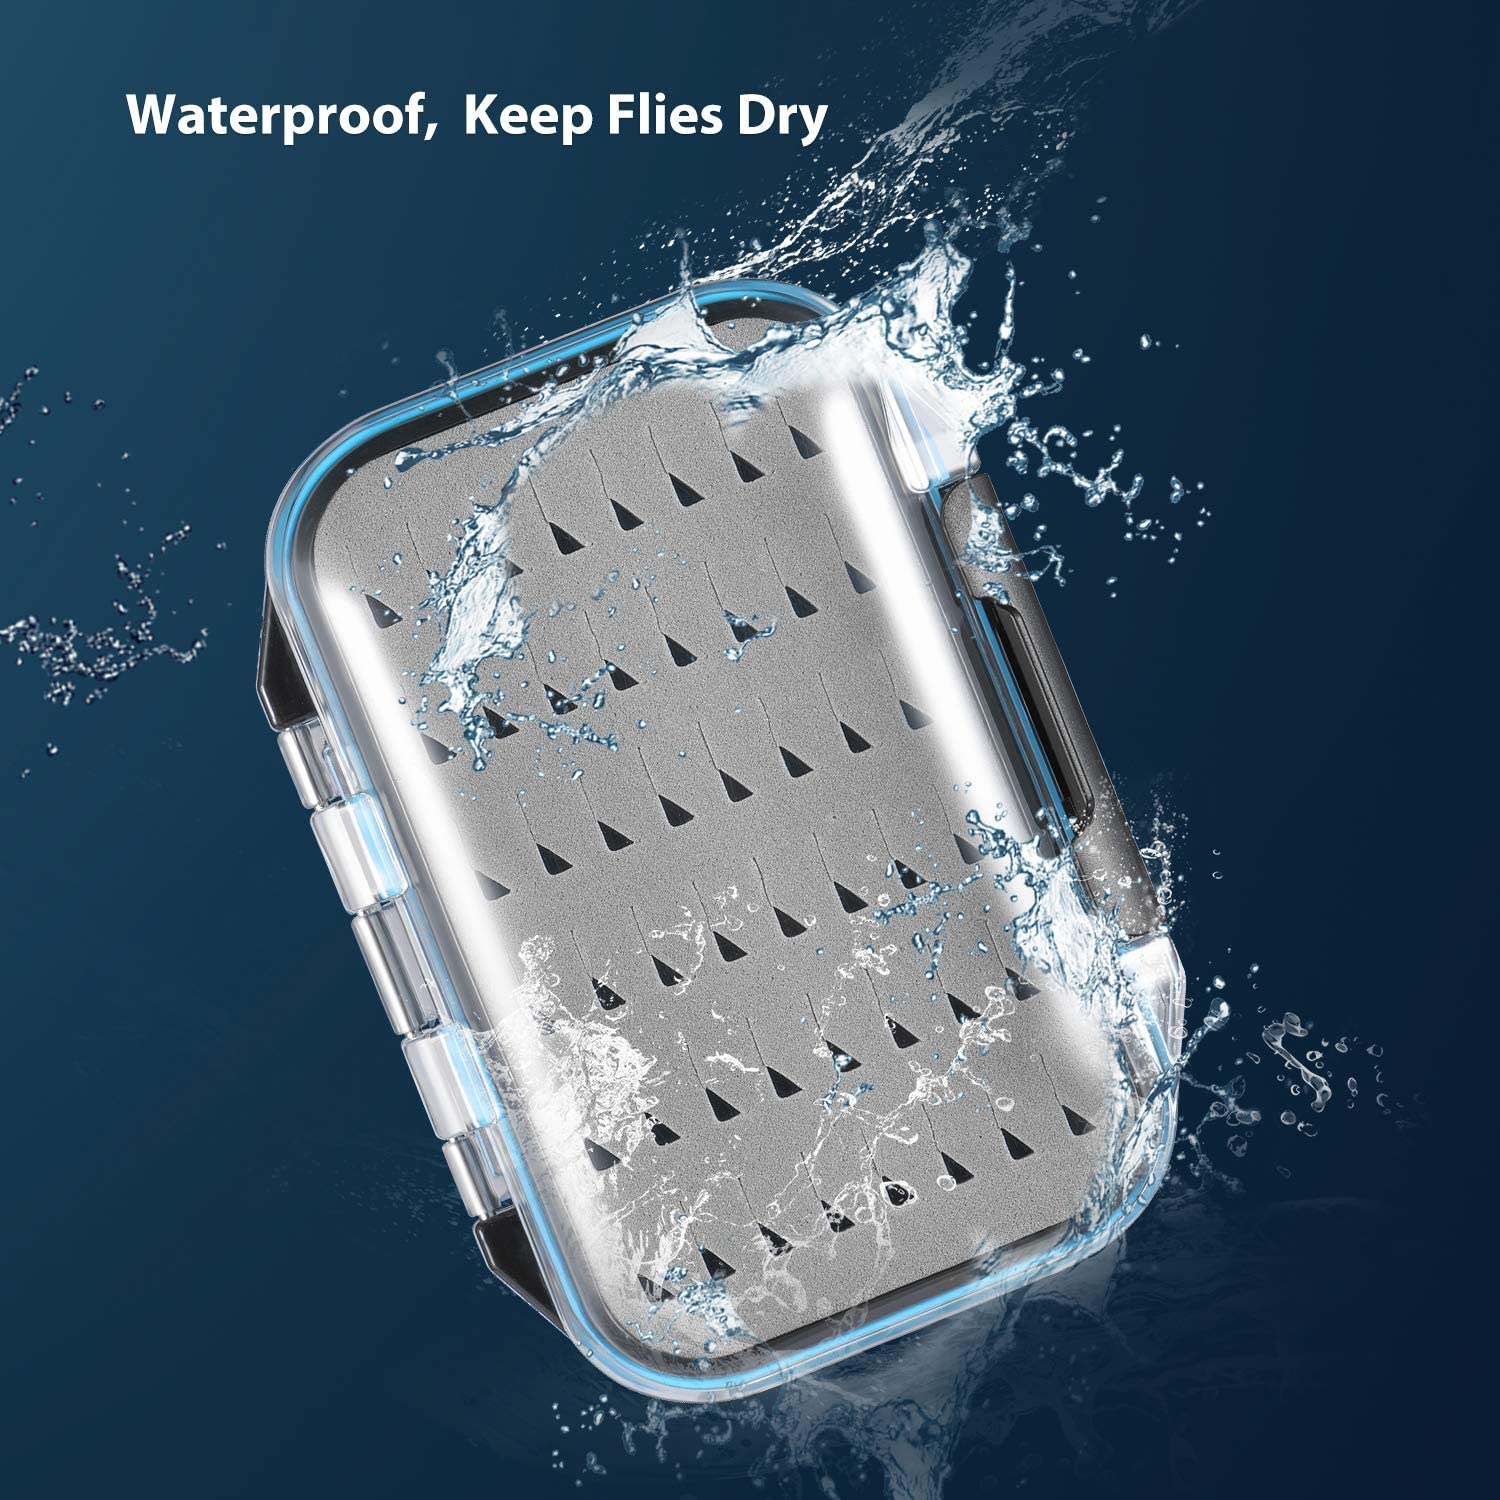 Magreel Fly Fishing Box Two-sided Waterproof Lightweight Fly Box Easy Grip Transparent Lid Fly Fishing Lures Box Multiple Sizes